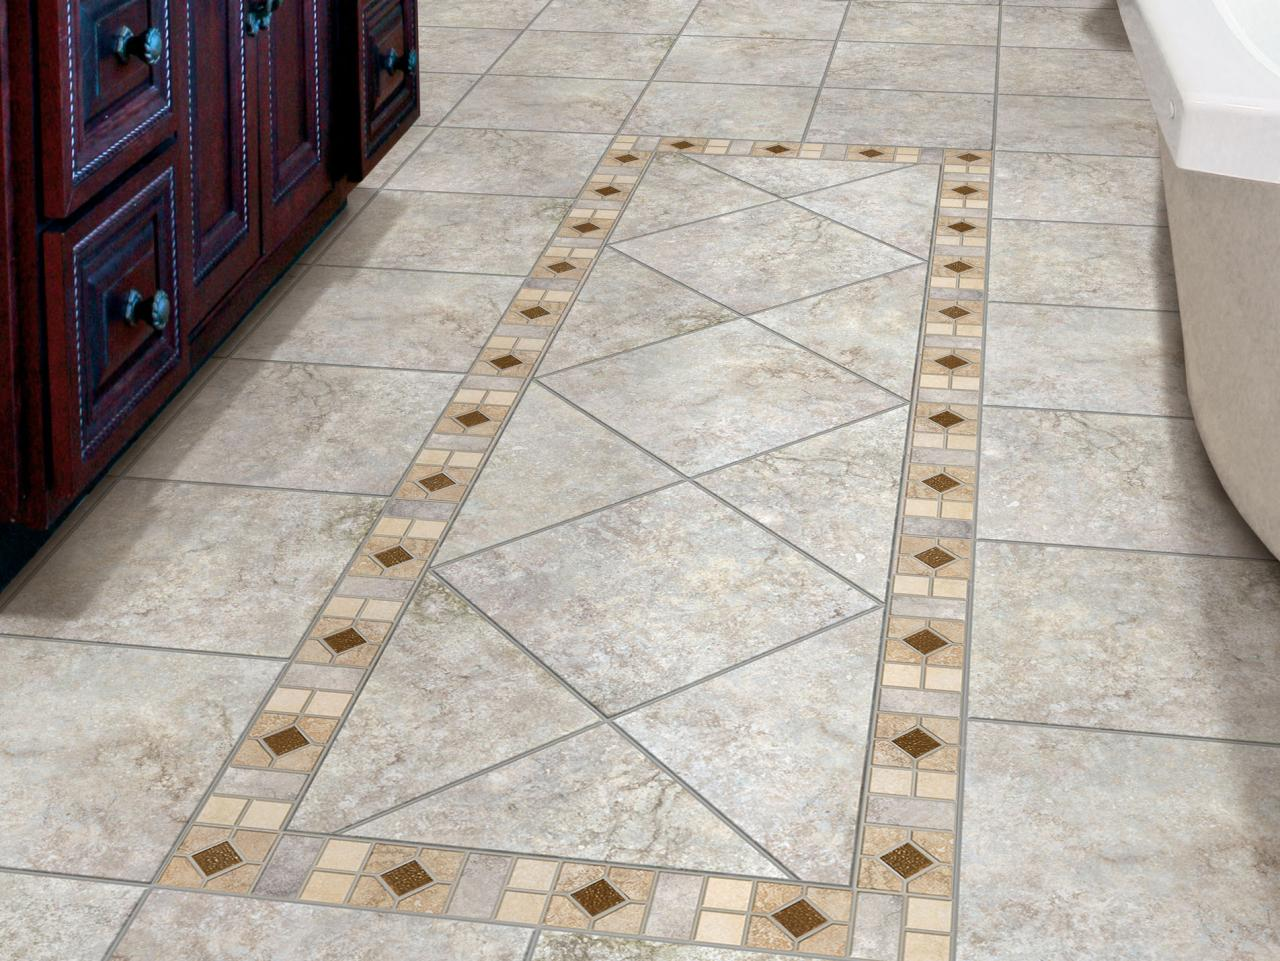 Reasons to choose porcelain tile hgtv reasons to choose porcelain tile doublecrazyfo Choice Image